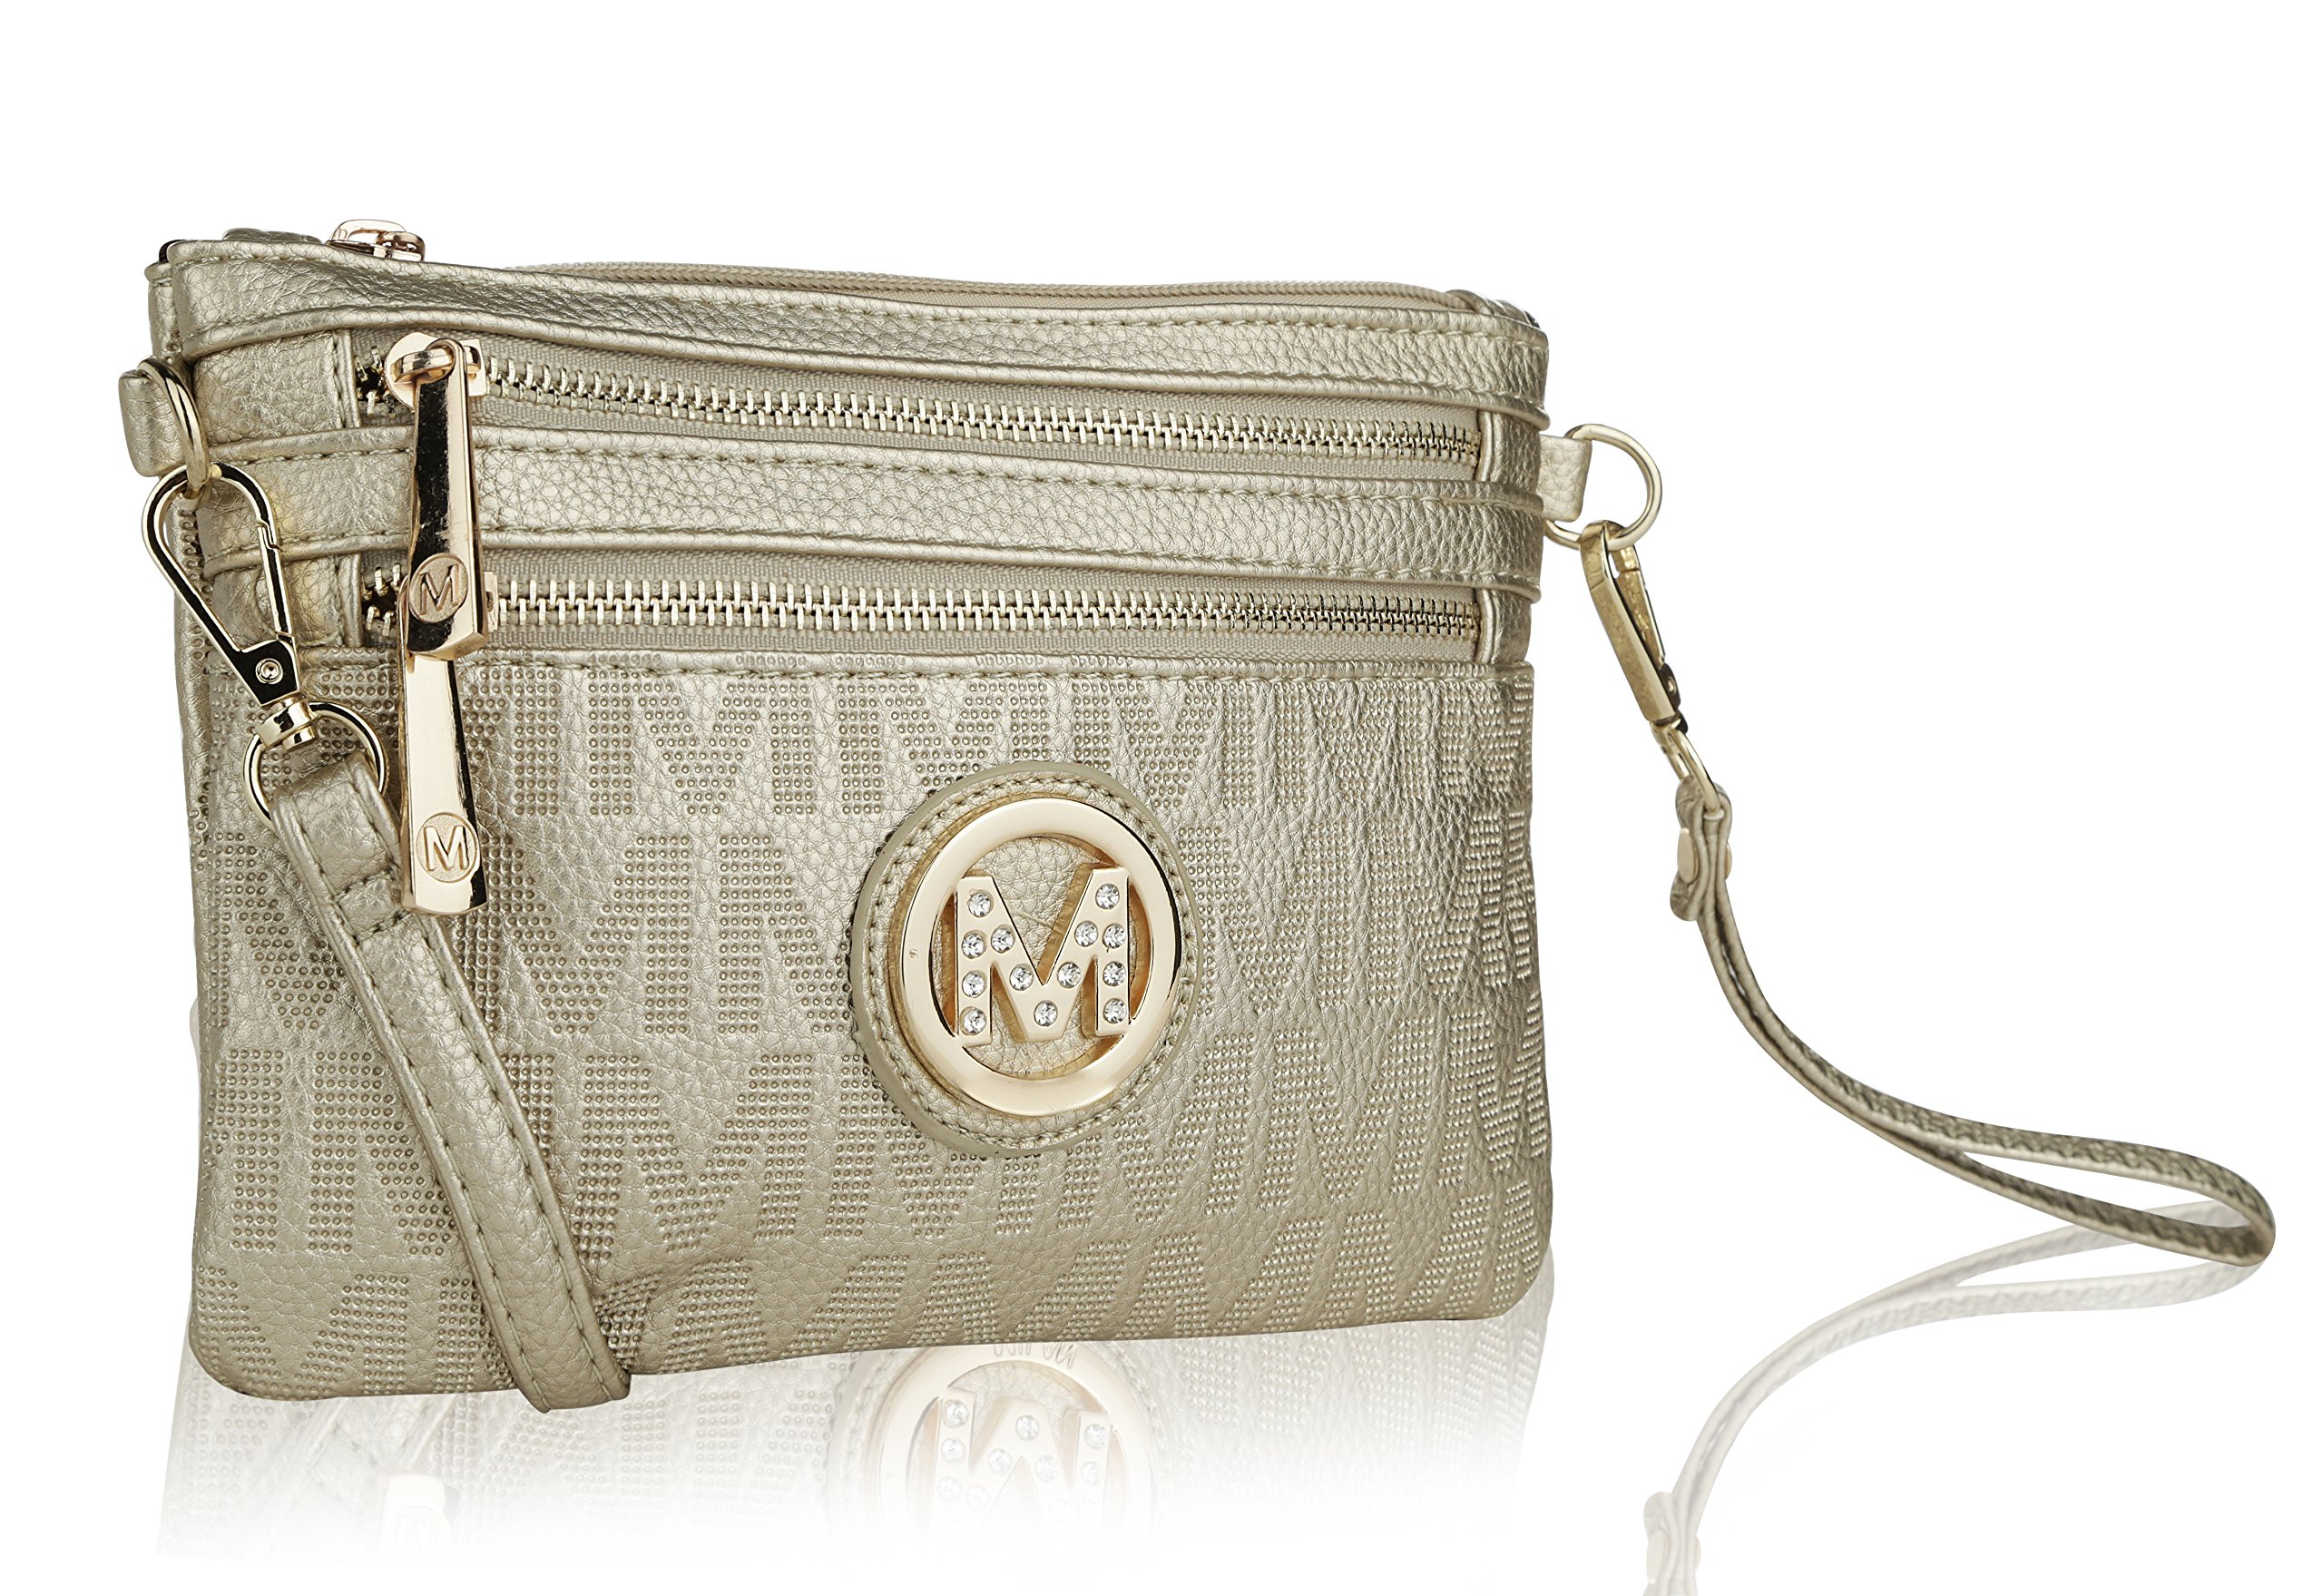 Wristlet Wallet Purse | MKF Collection Roonie Milan Signature Design